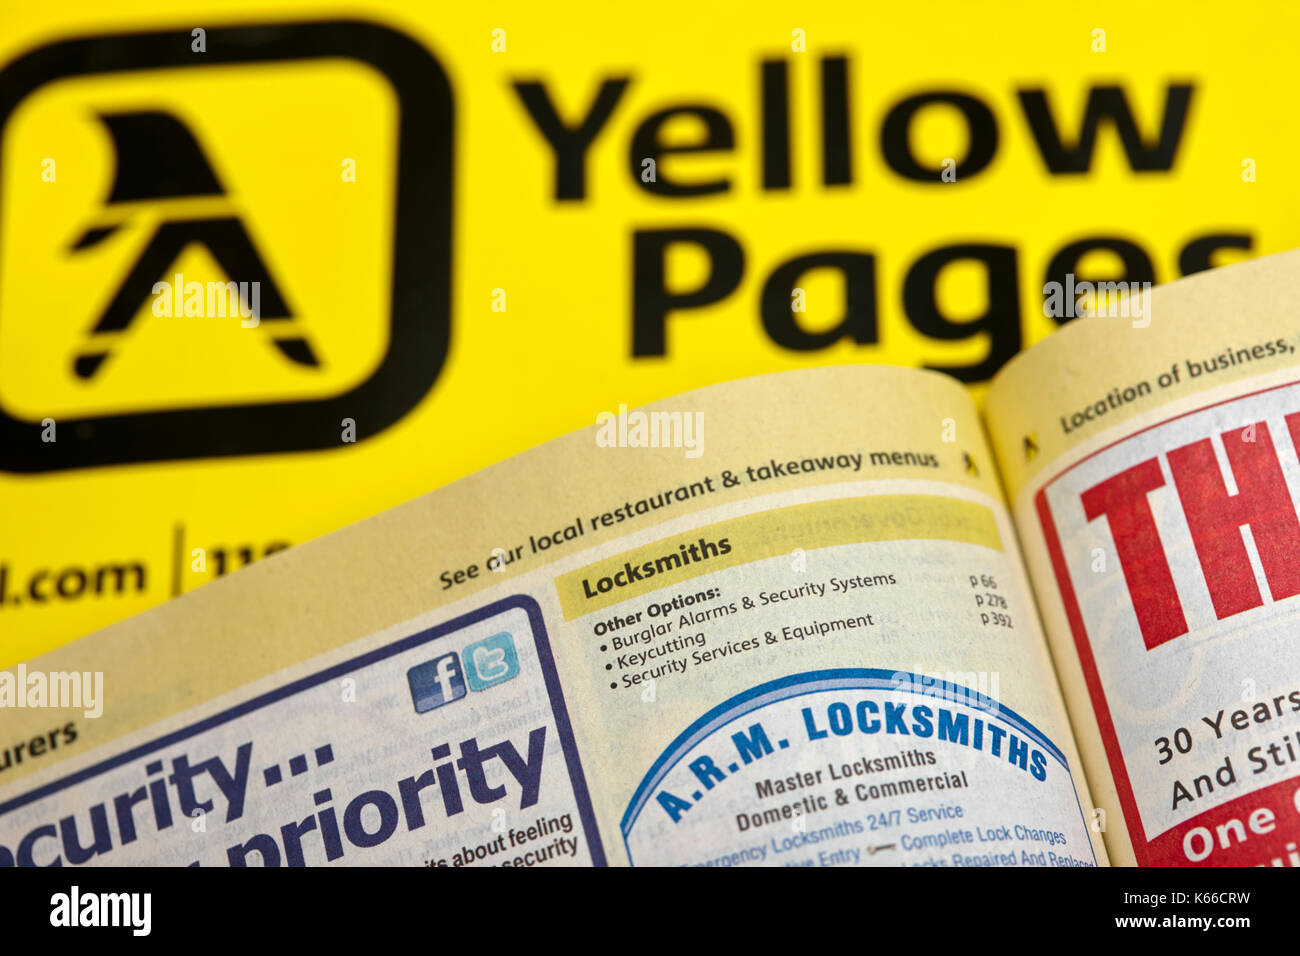 locksmith category in yellow pages classified telephone directory paper edition uk - Stock Image